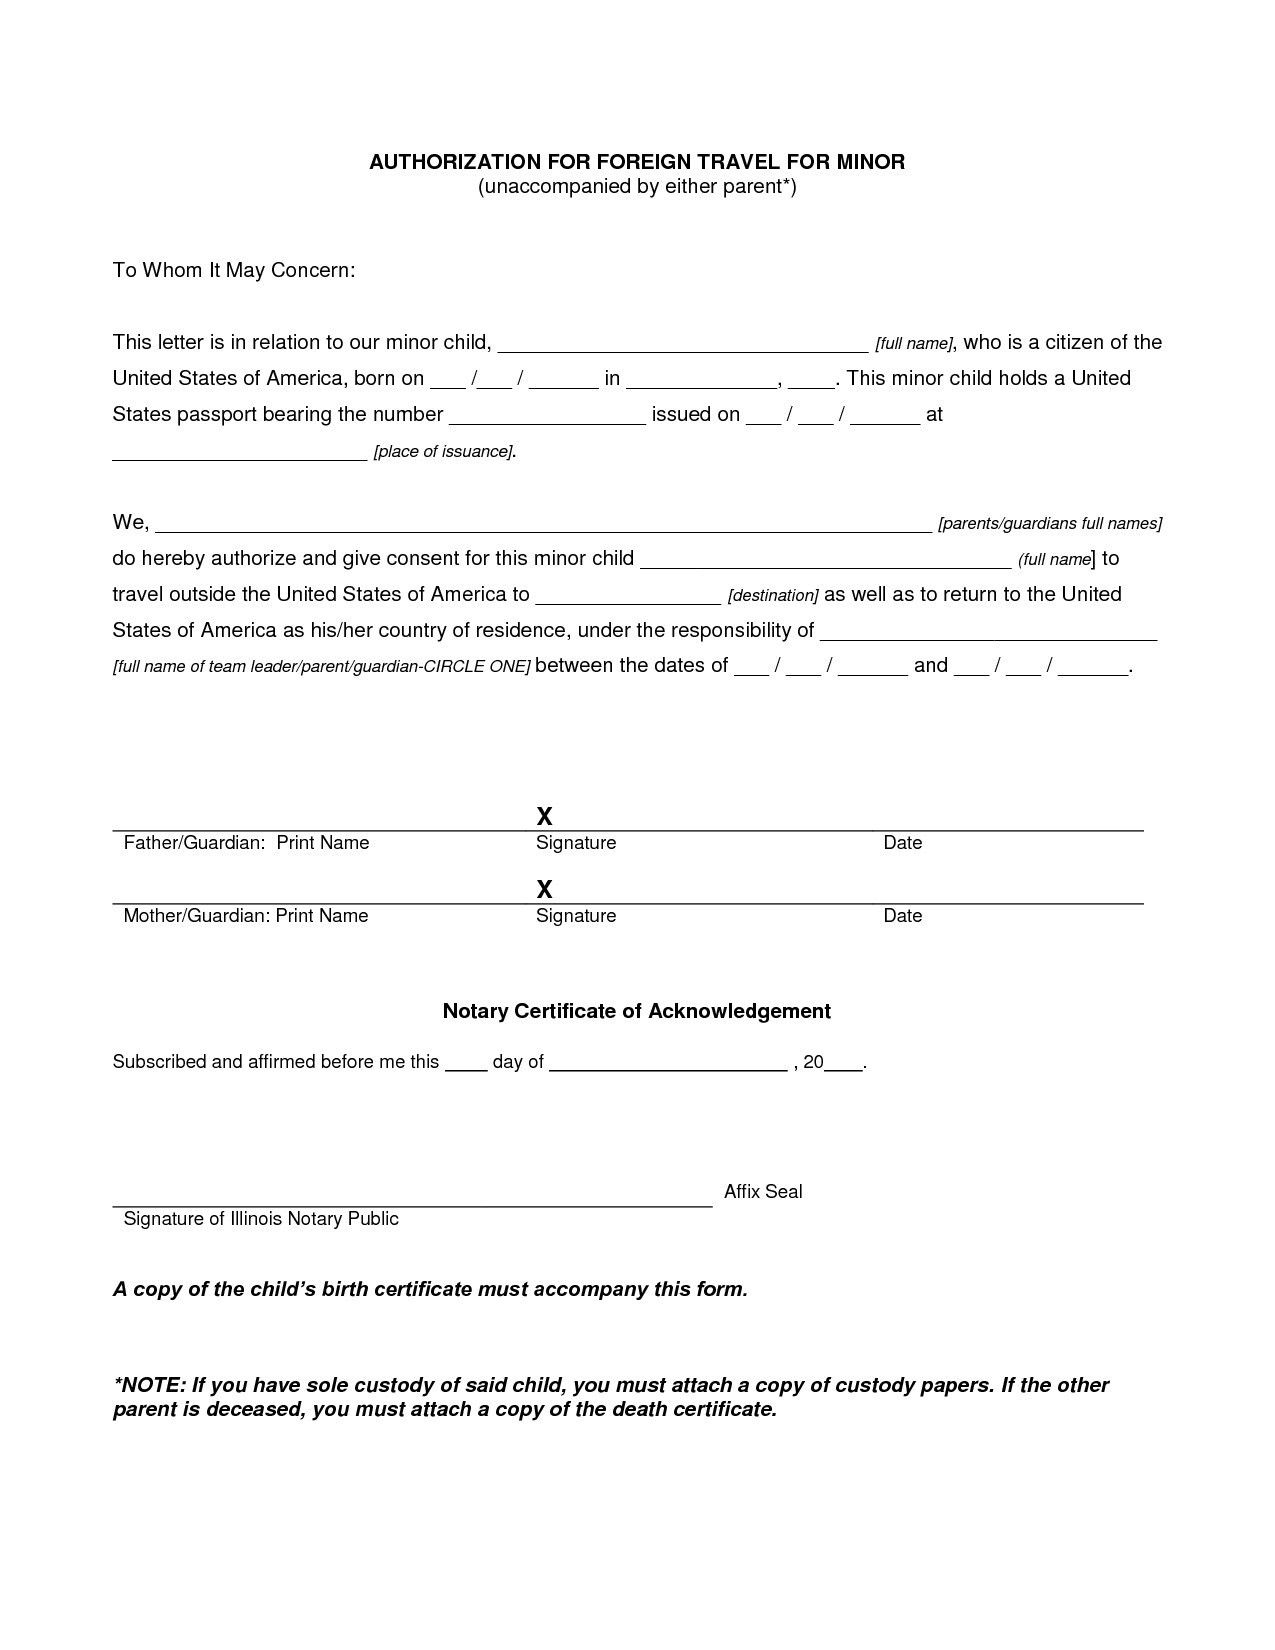 Proof Of Residency Letter Template Pdf - Inspirational Proof Residency Letter Template Pdf